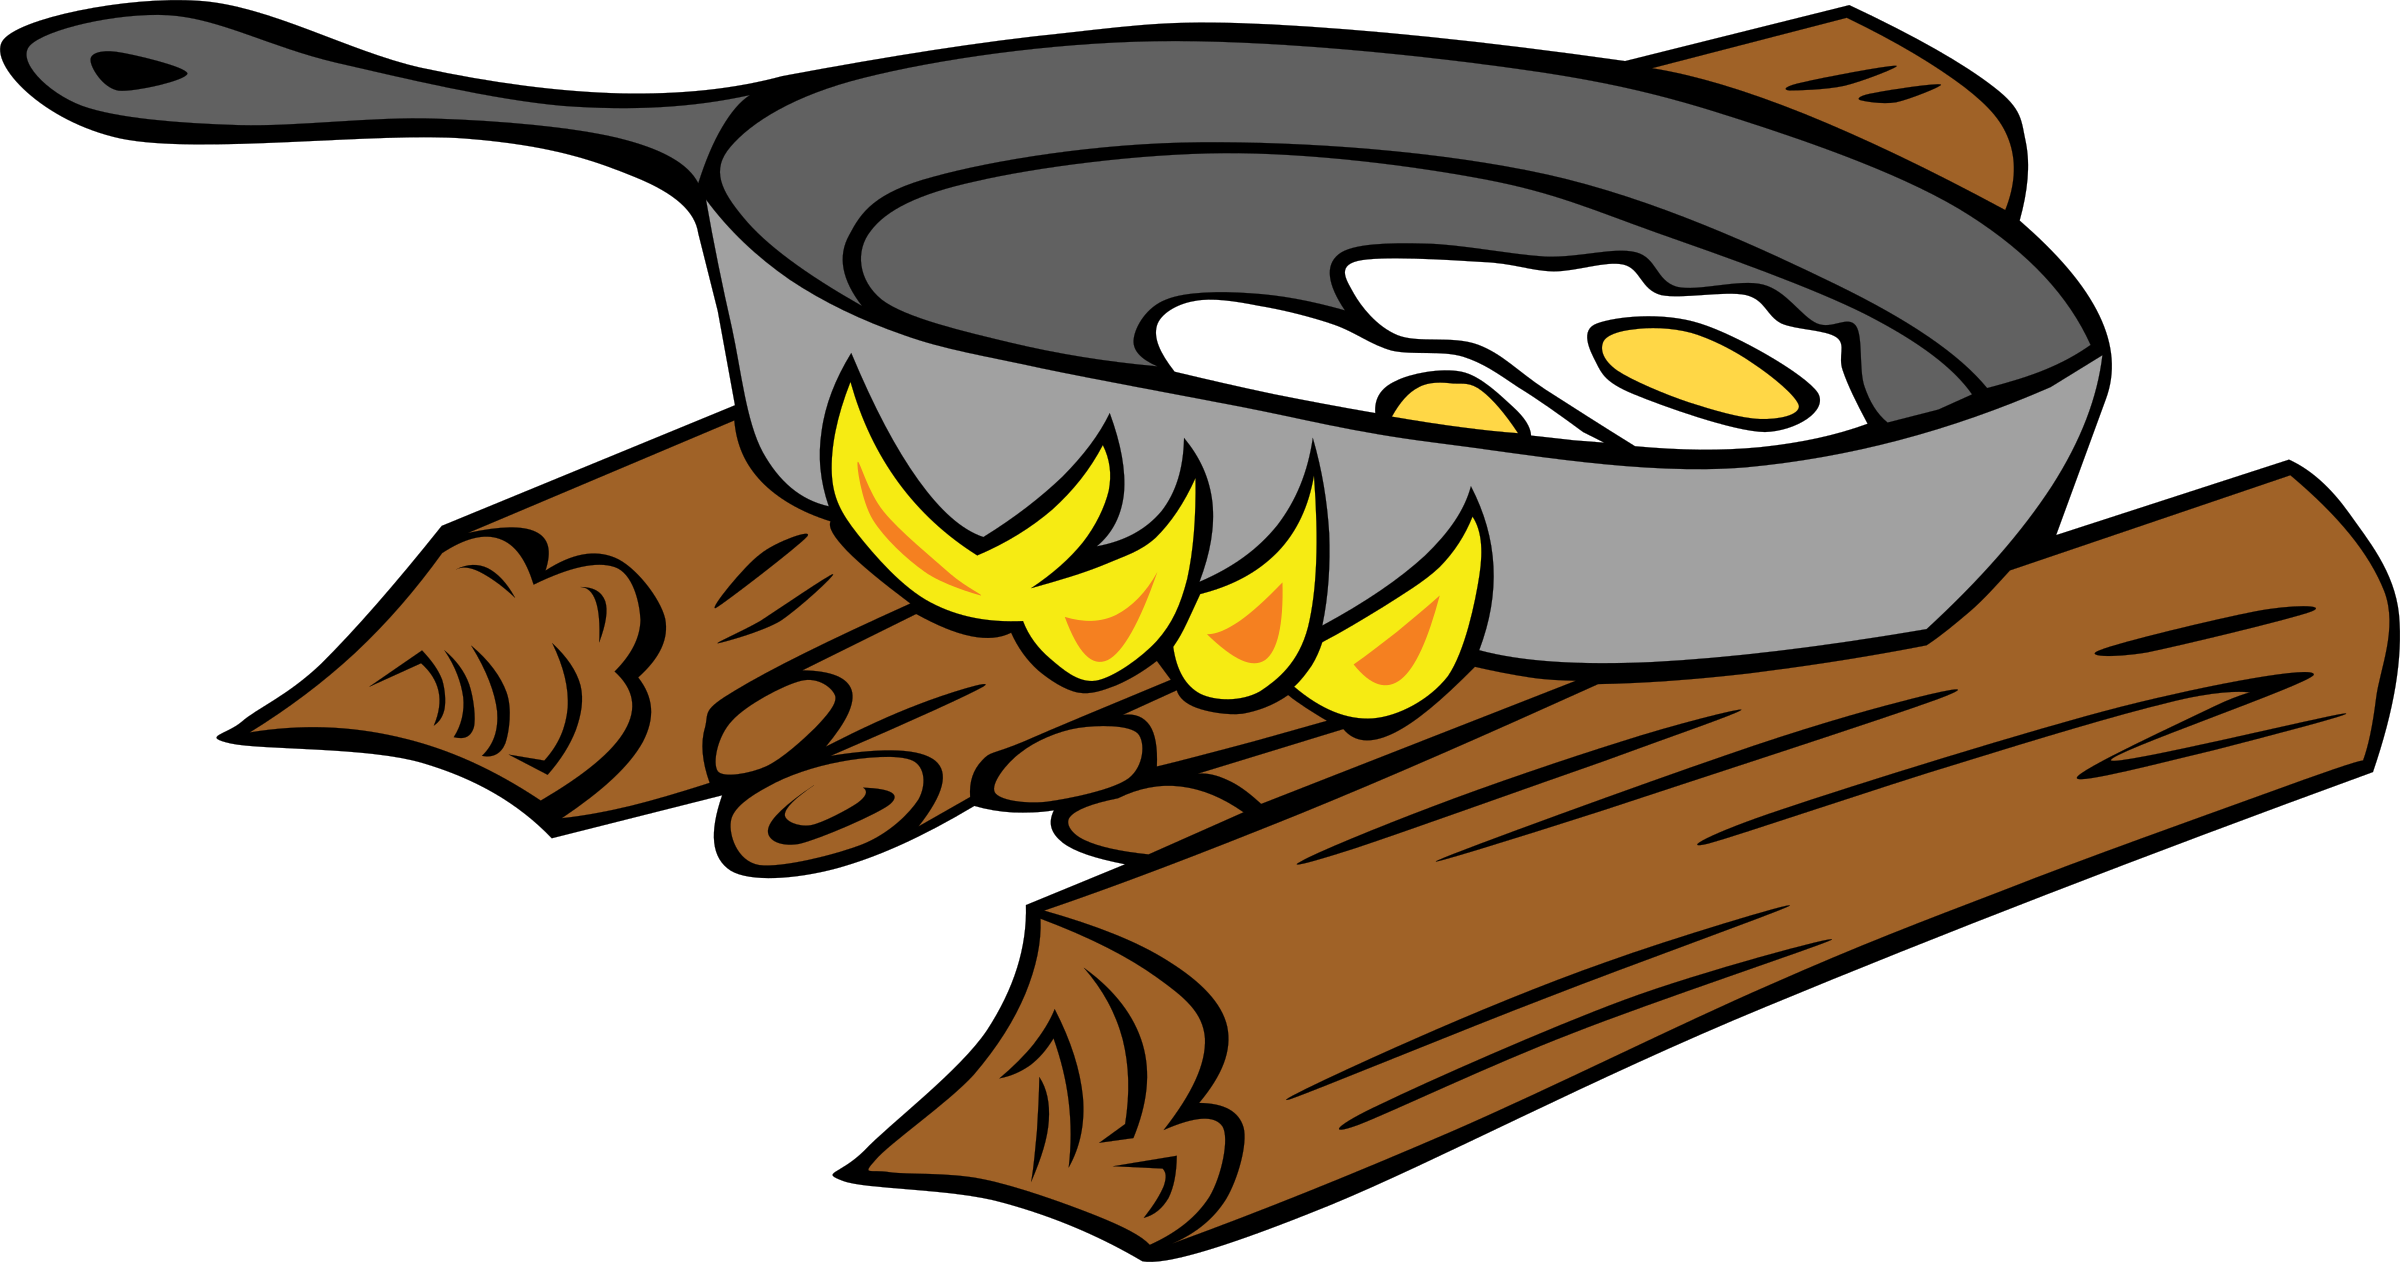 Cooking by the book clipart freeuse Clipart - Campfires and cooking cranes freeuse